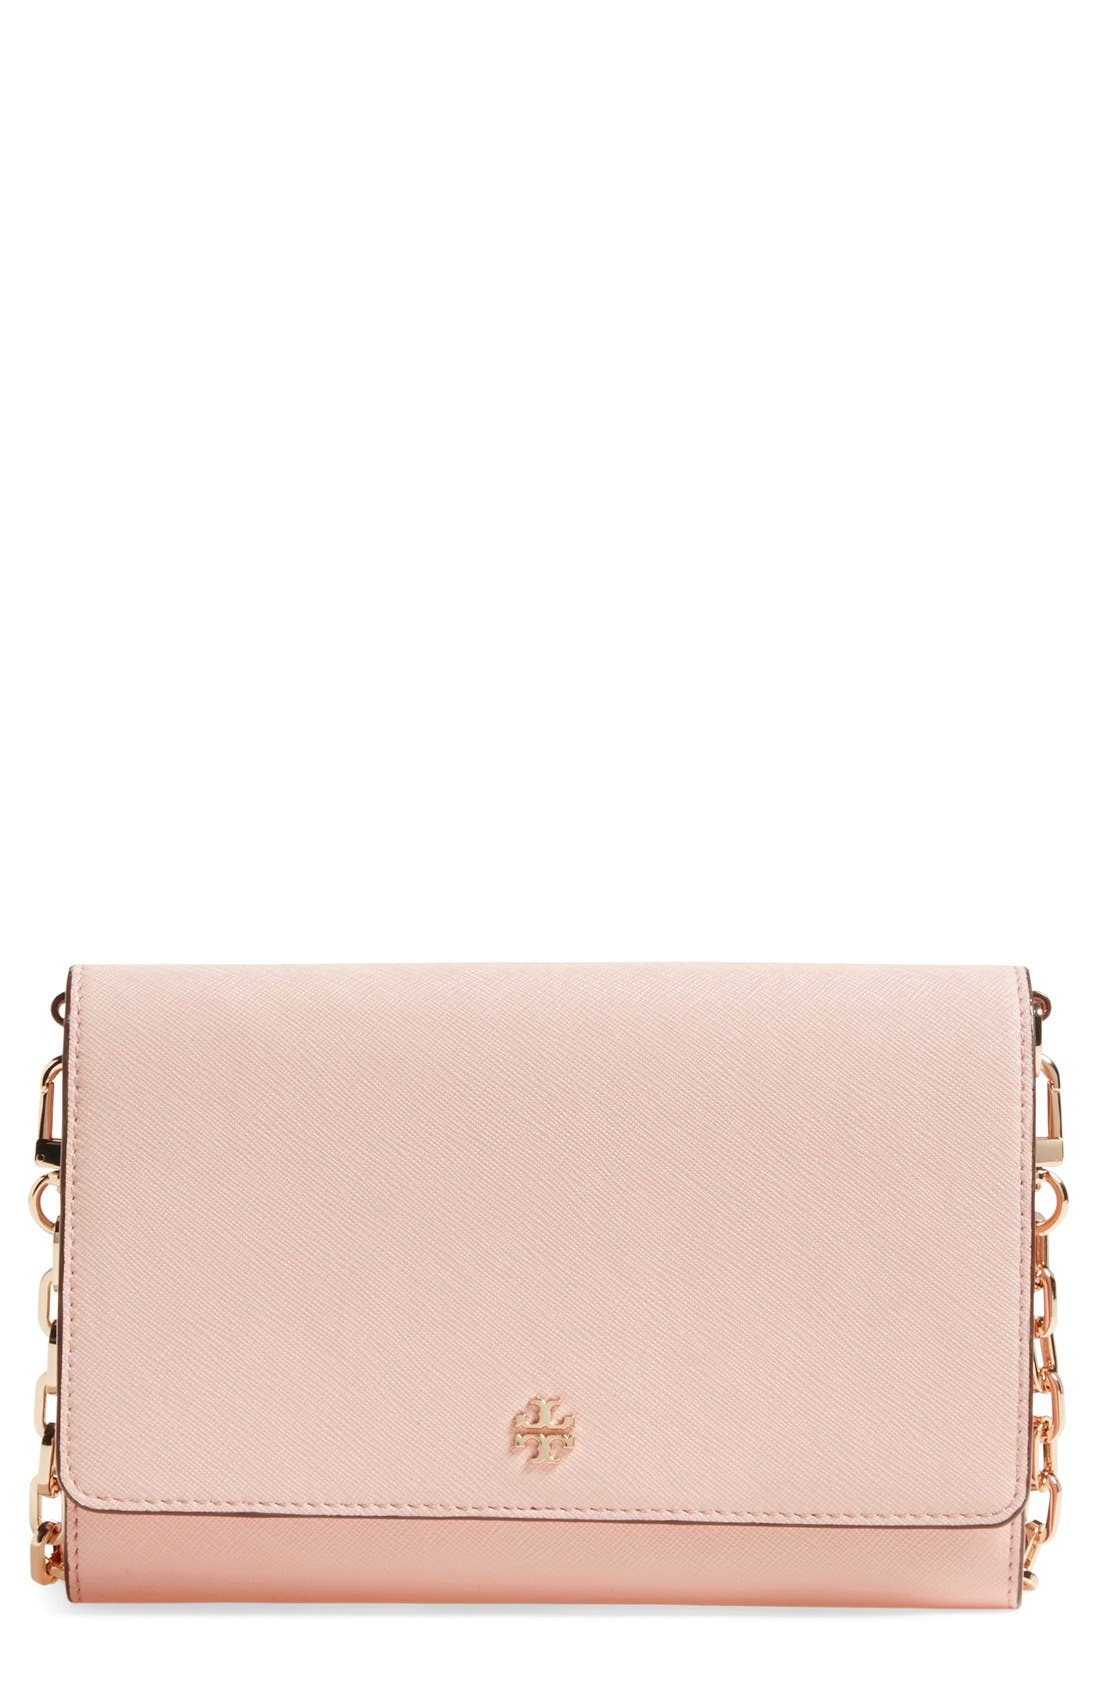 Tory Burch 'Robinson' Leather Wallet on a Chain